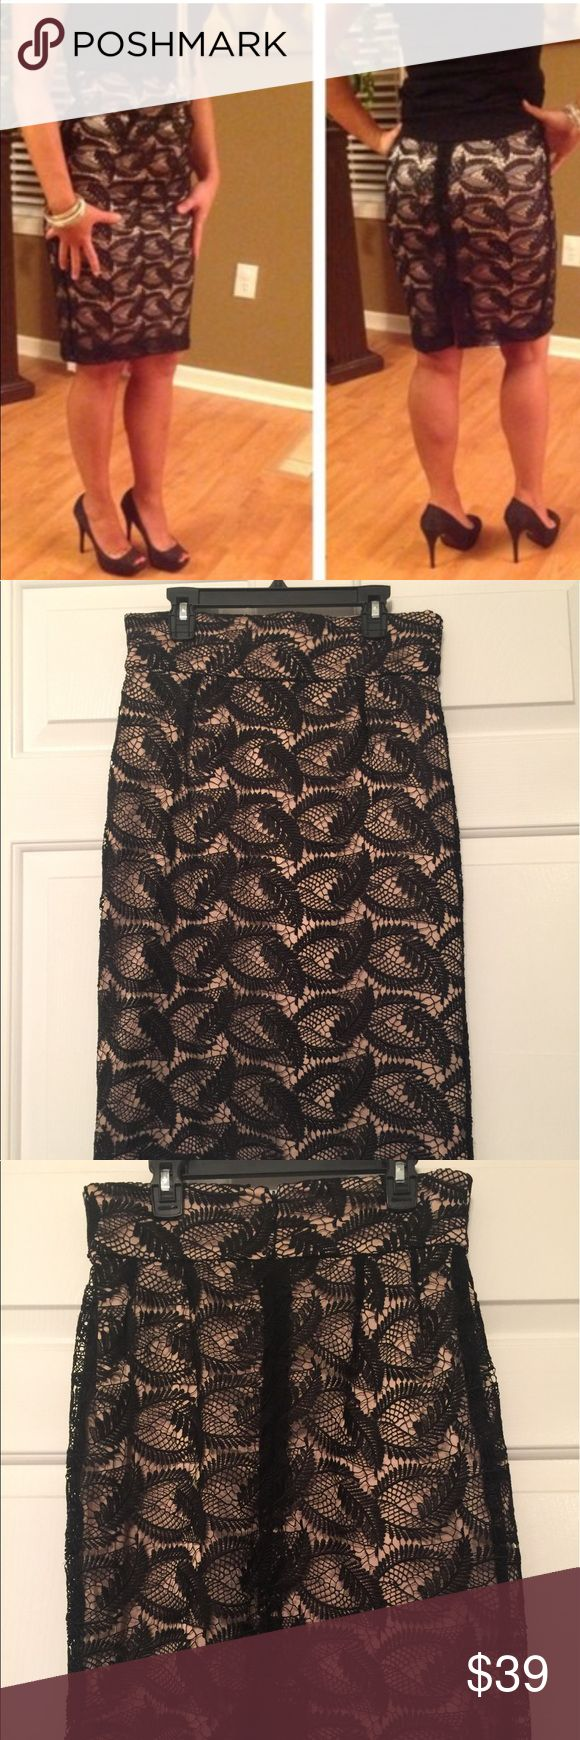 Antonio Melanie black lace with beige pencil skirt Very sophisticated and classy laced pencil skirt. Basically brand new!! ANTONIO MELANI Skirts Pencil